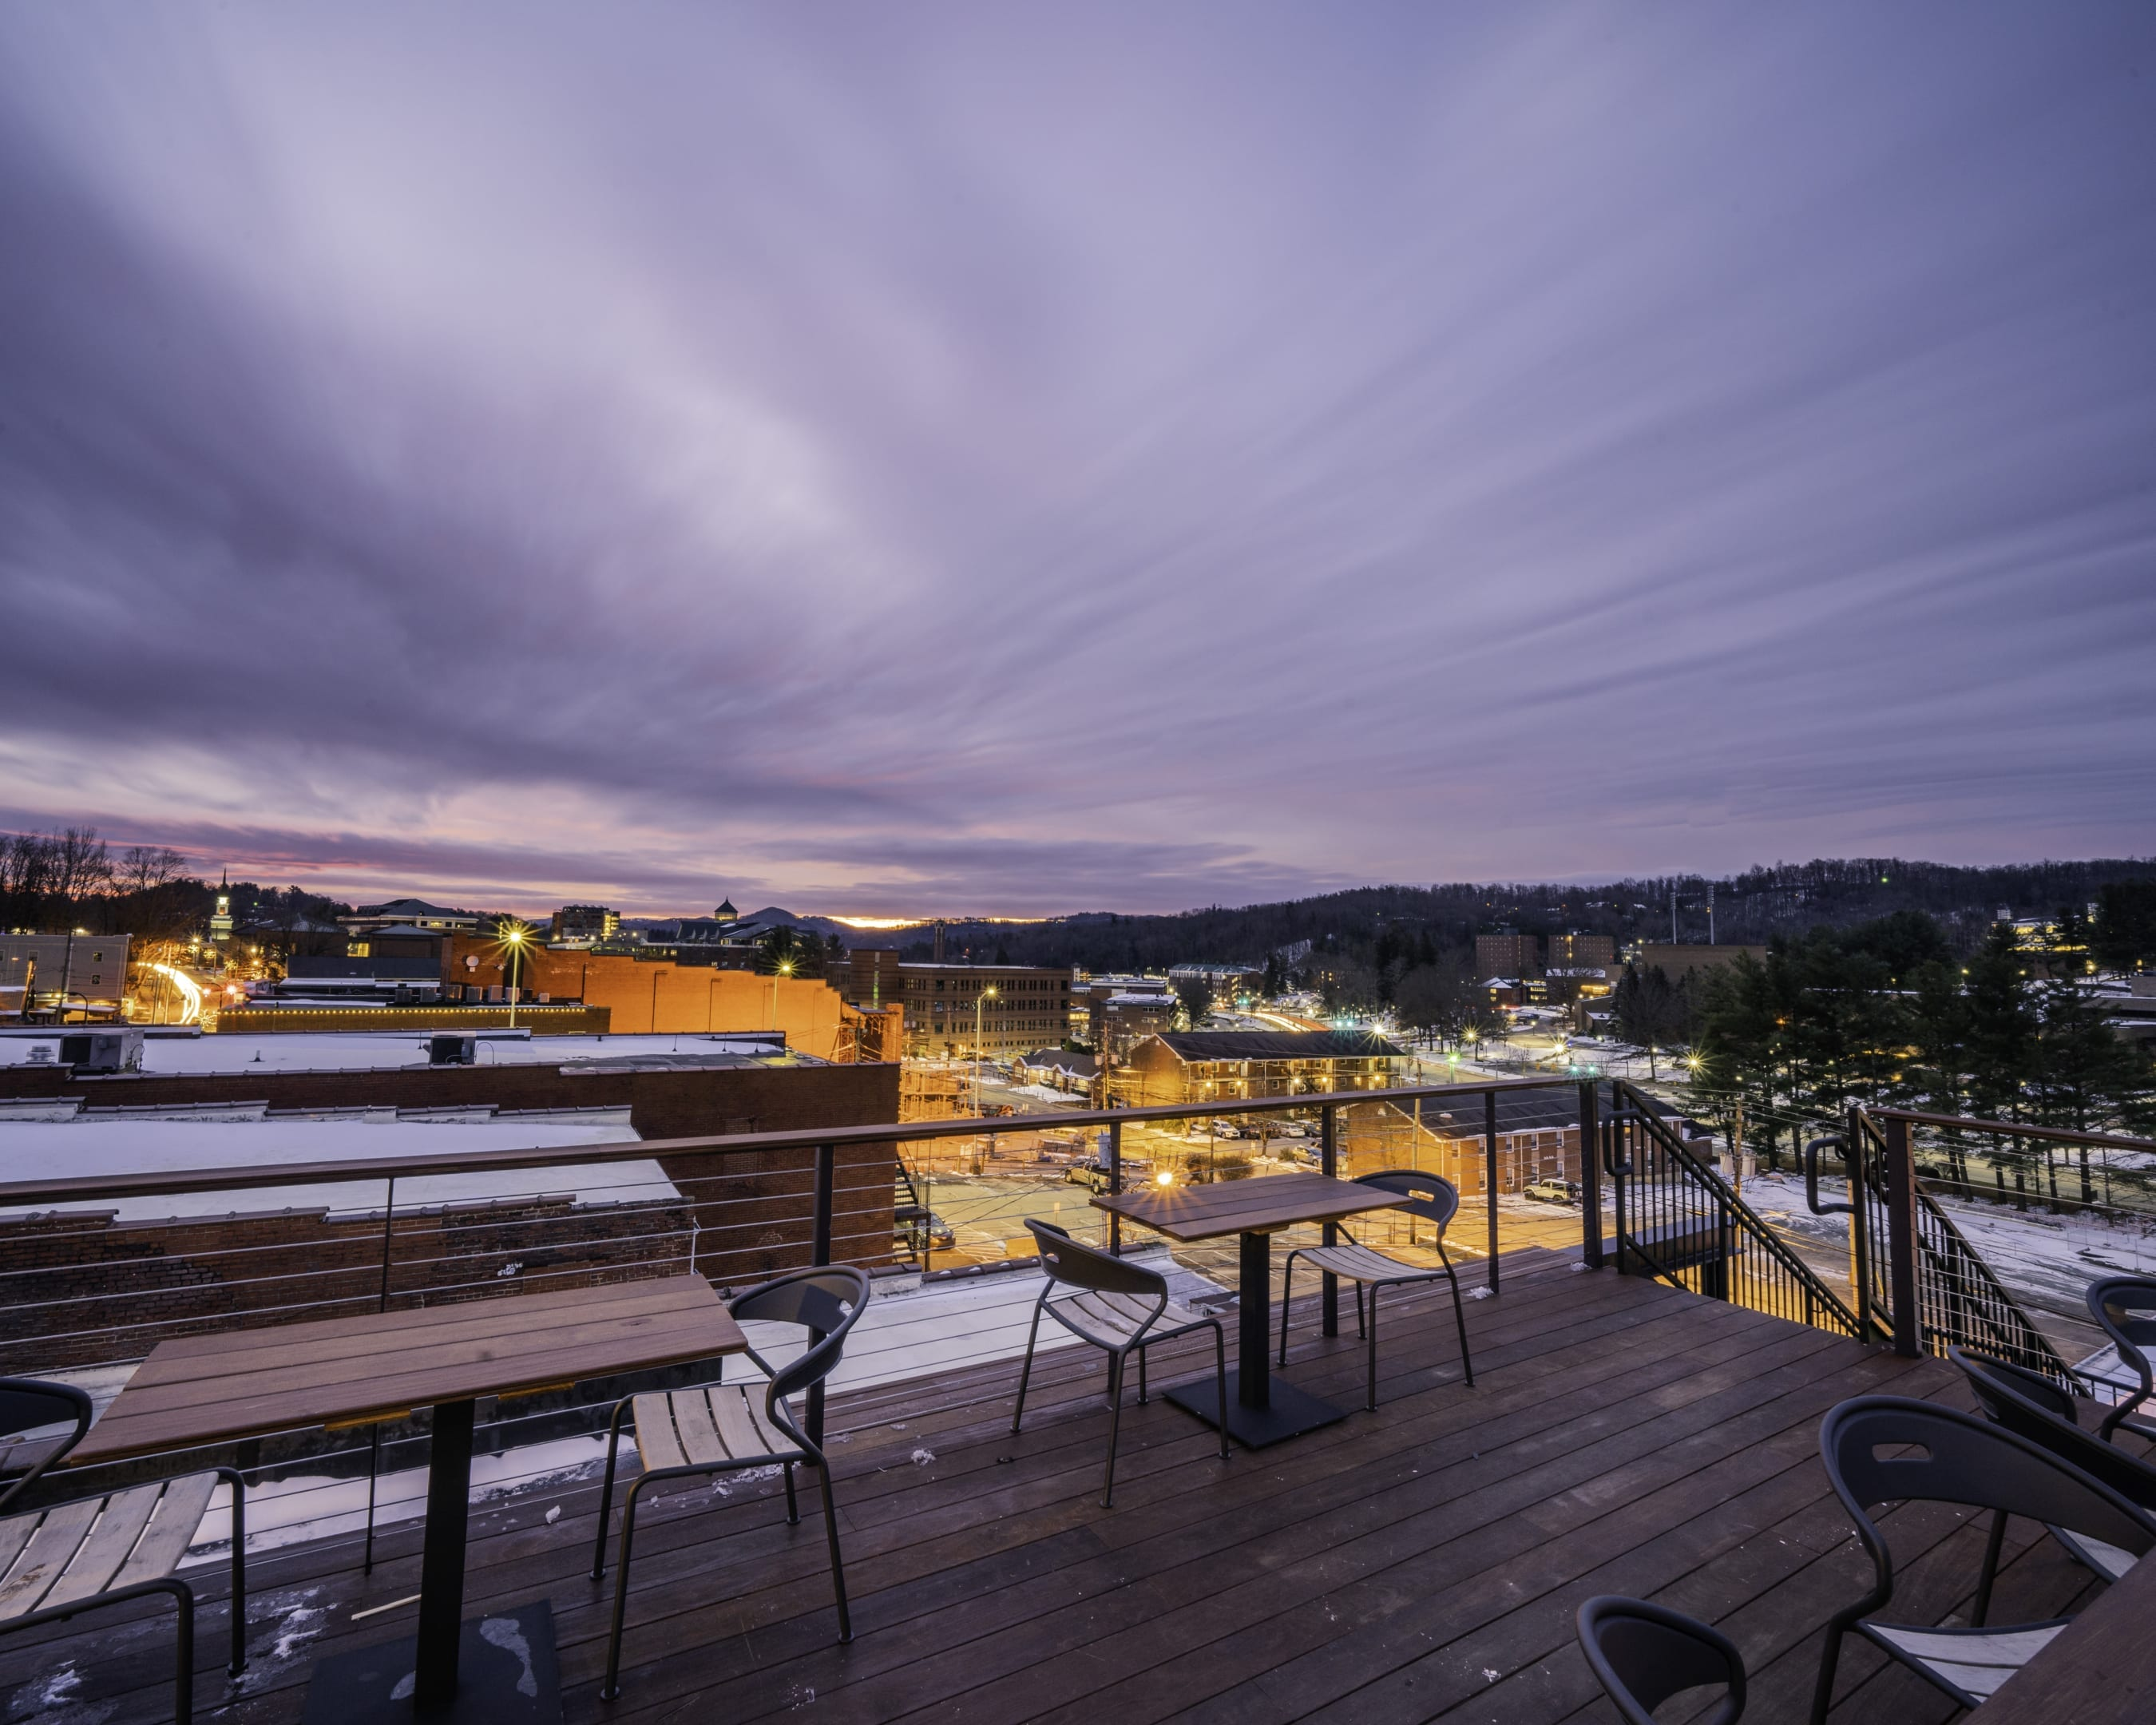 The Horton Hotel Rooftop Bar